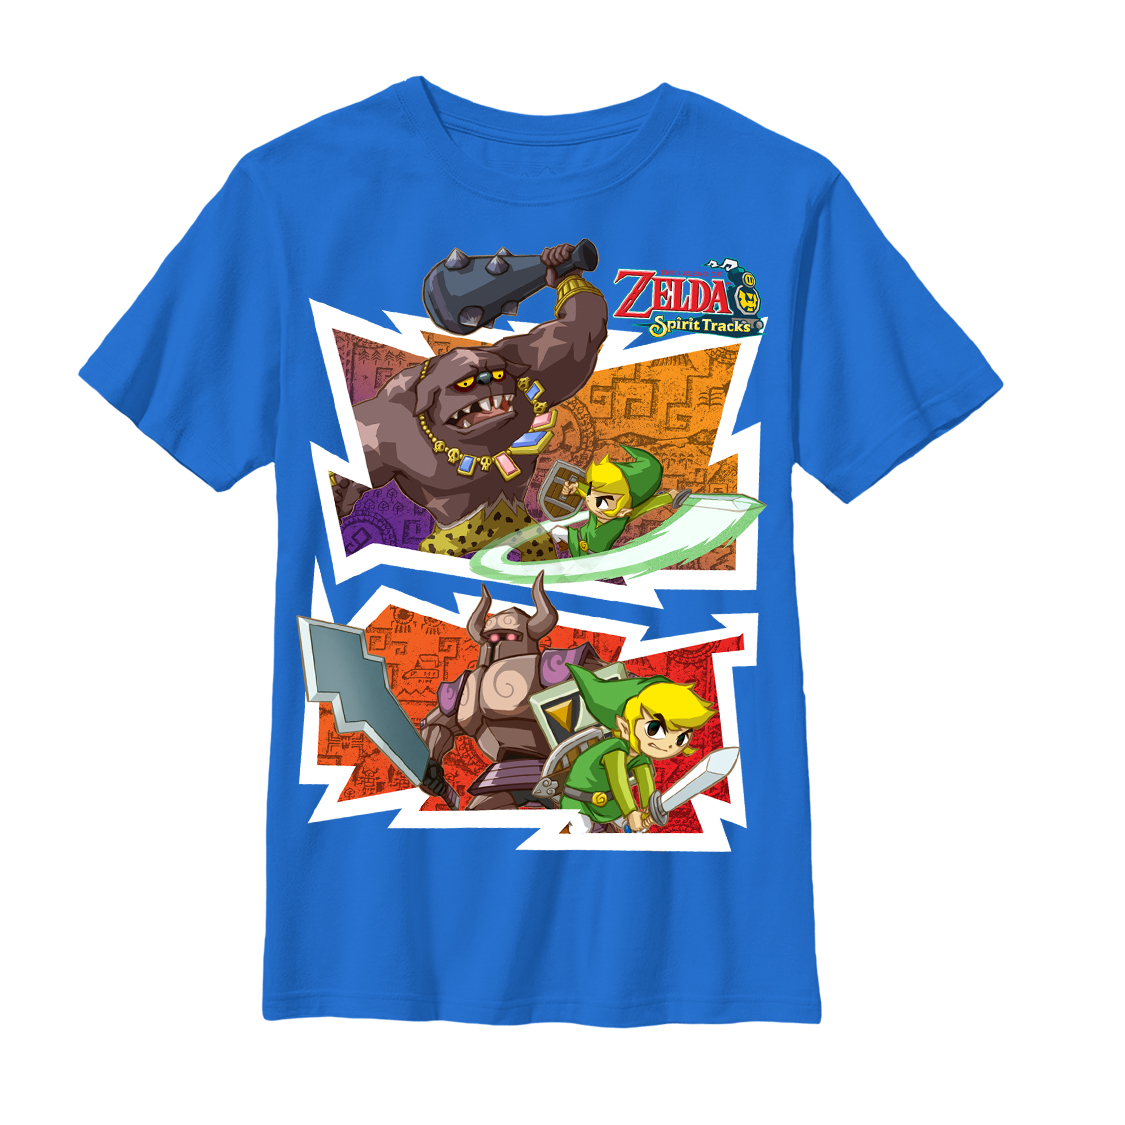 The Legend of Zelda Spirit Tracks Fight Night Youth Royal Blue T-Shirt, Large